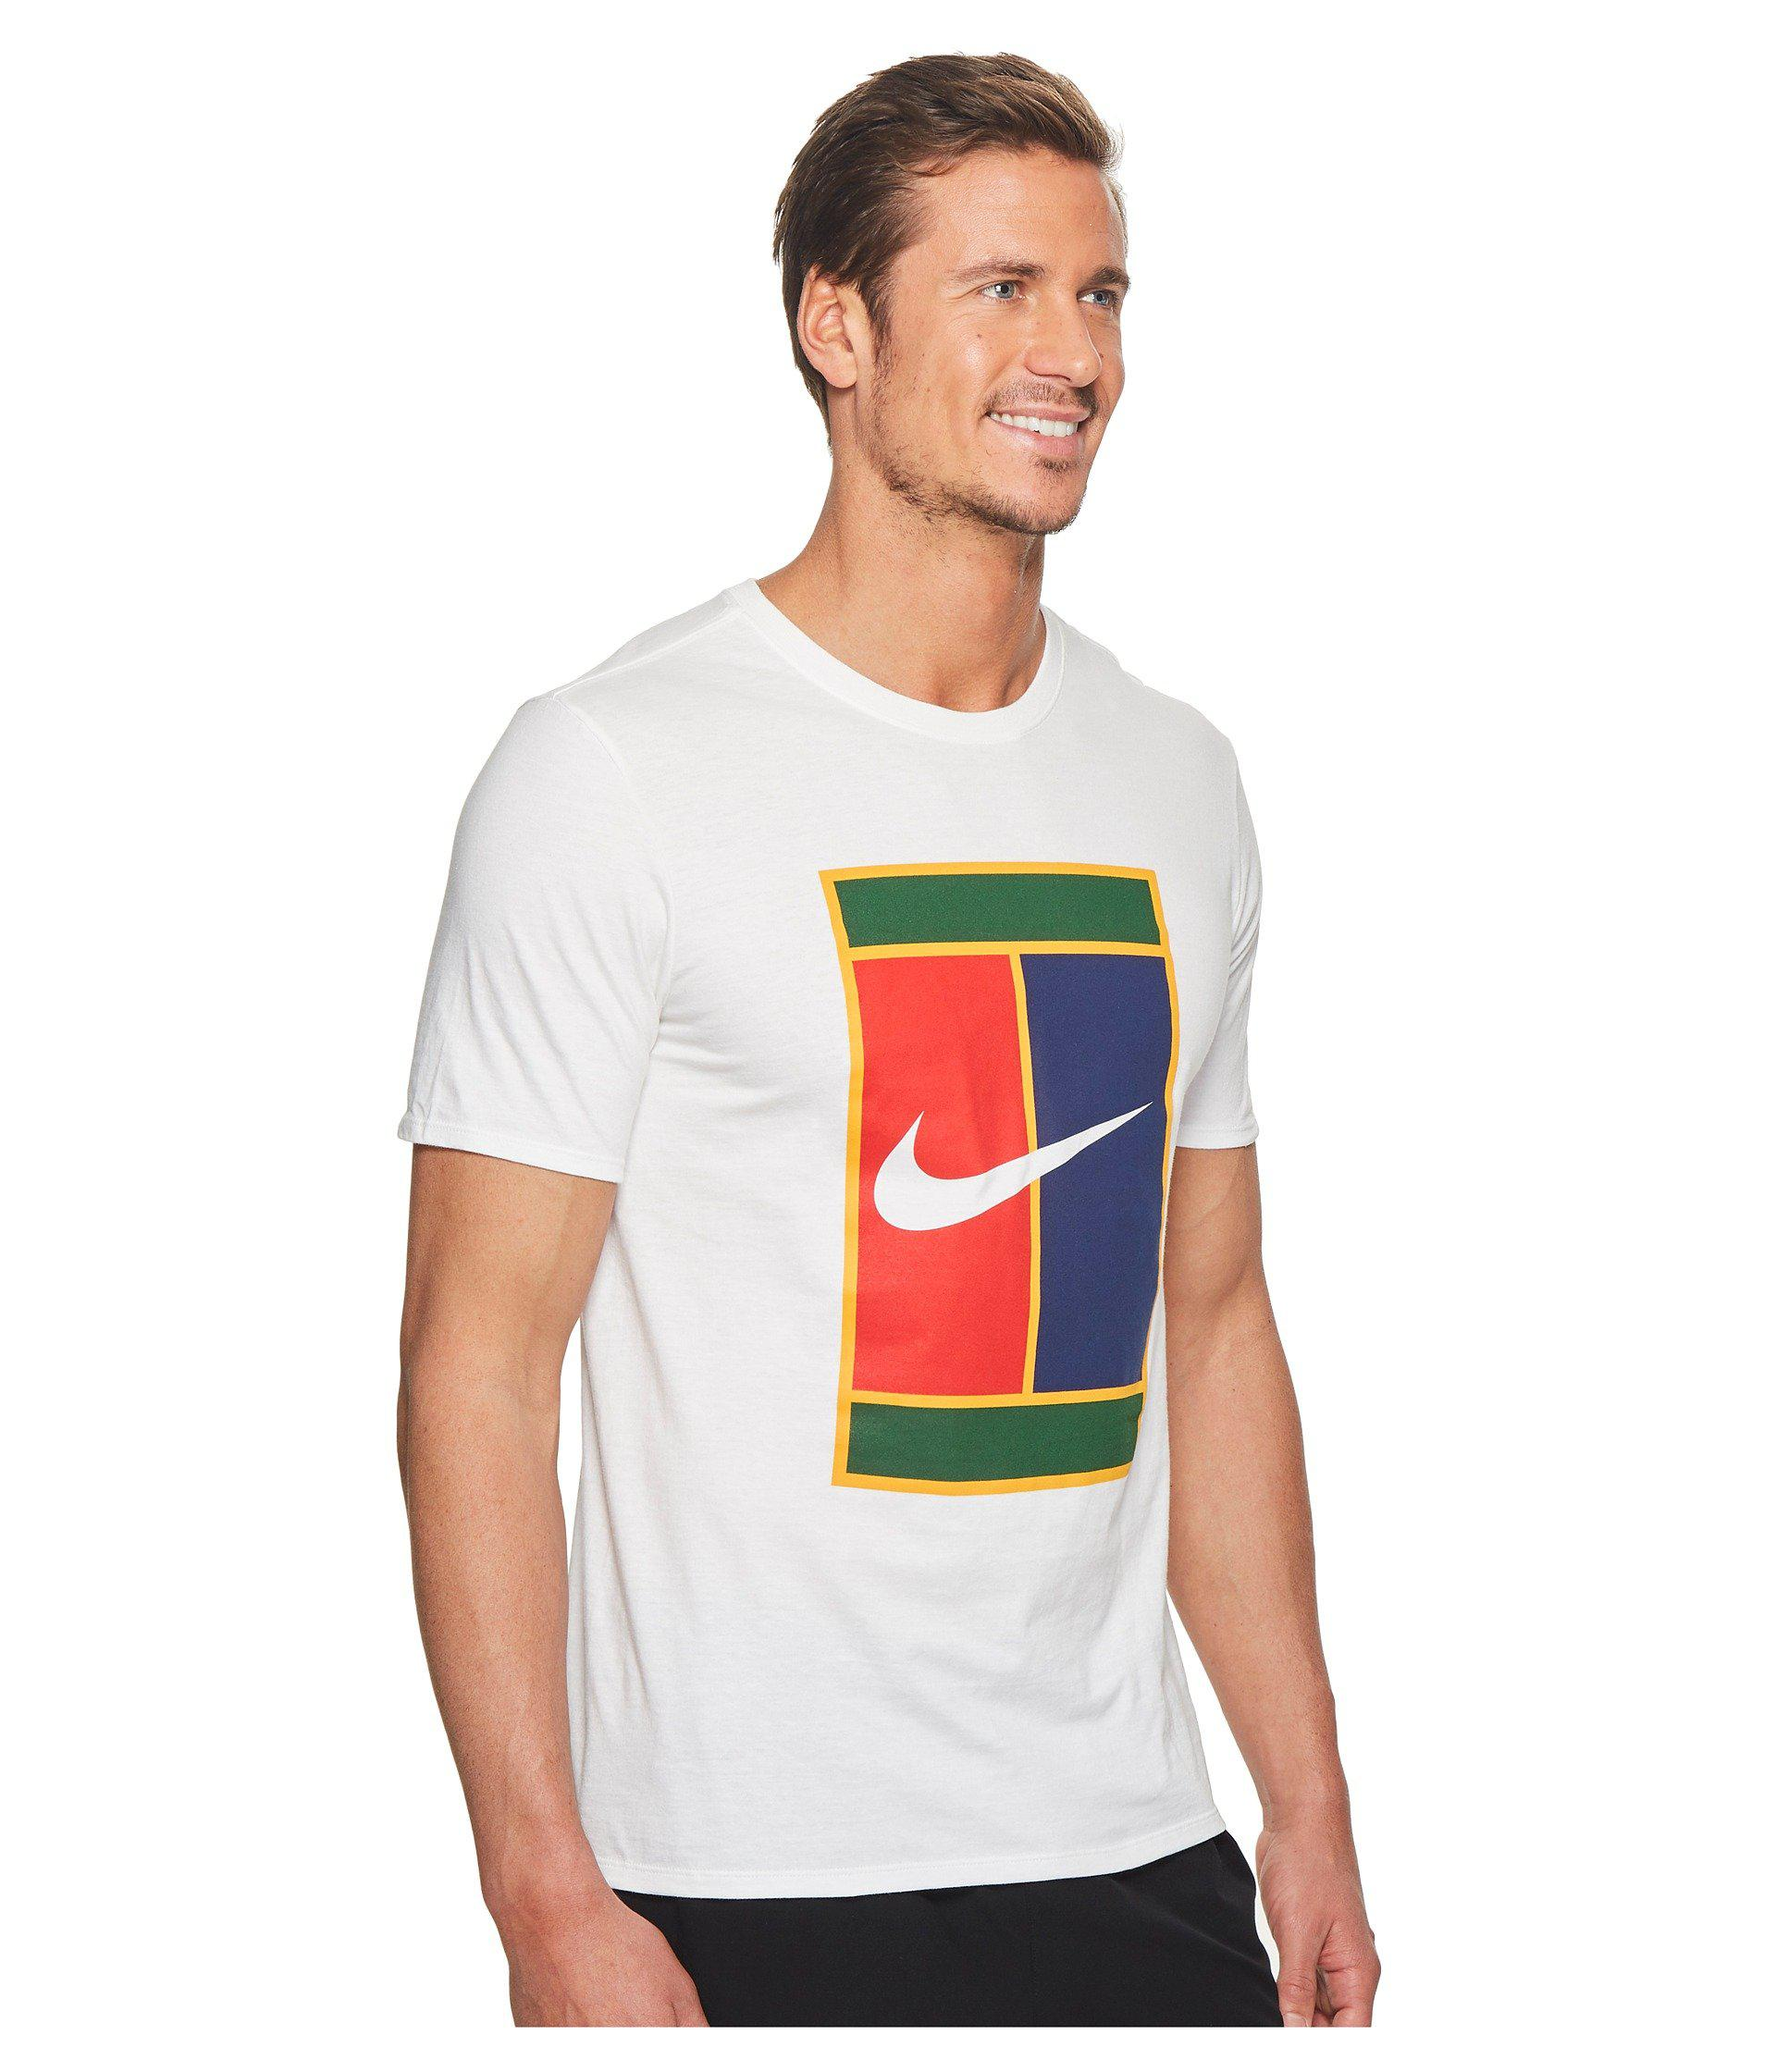 984055c8 Nike Court Heritage Logo Tennis Tee in White for Men - Lyst